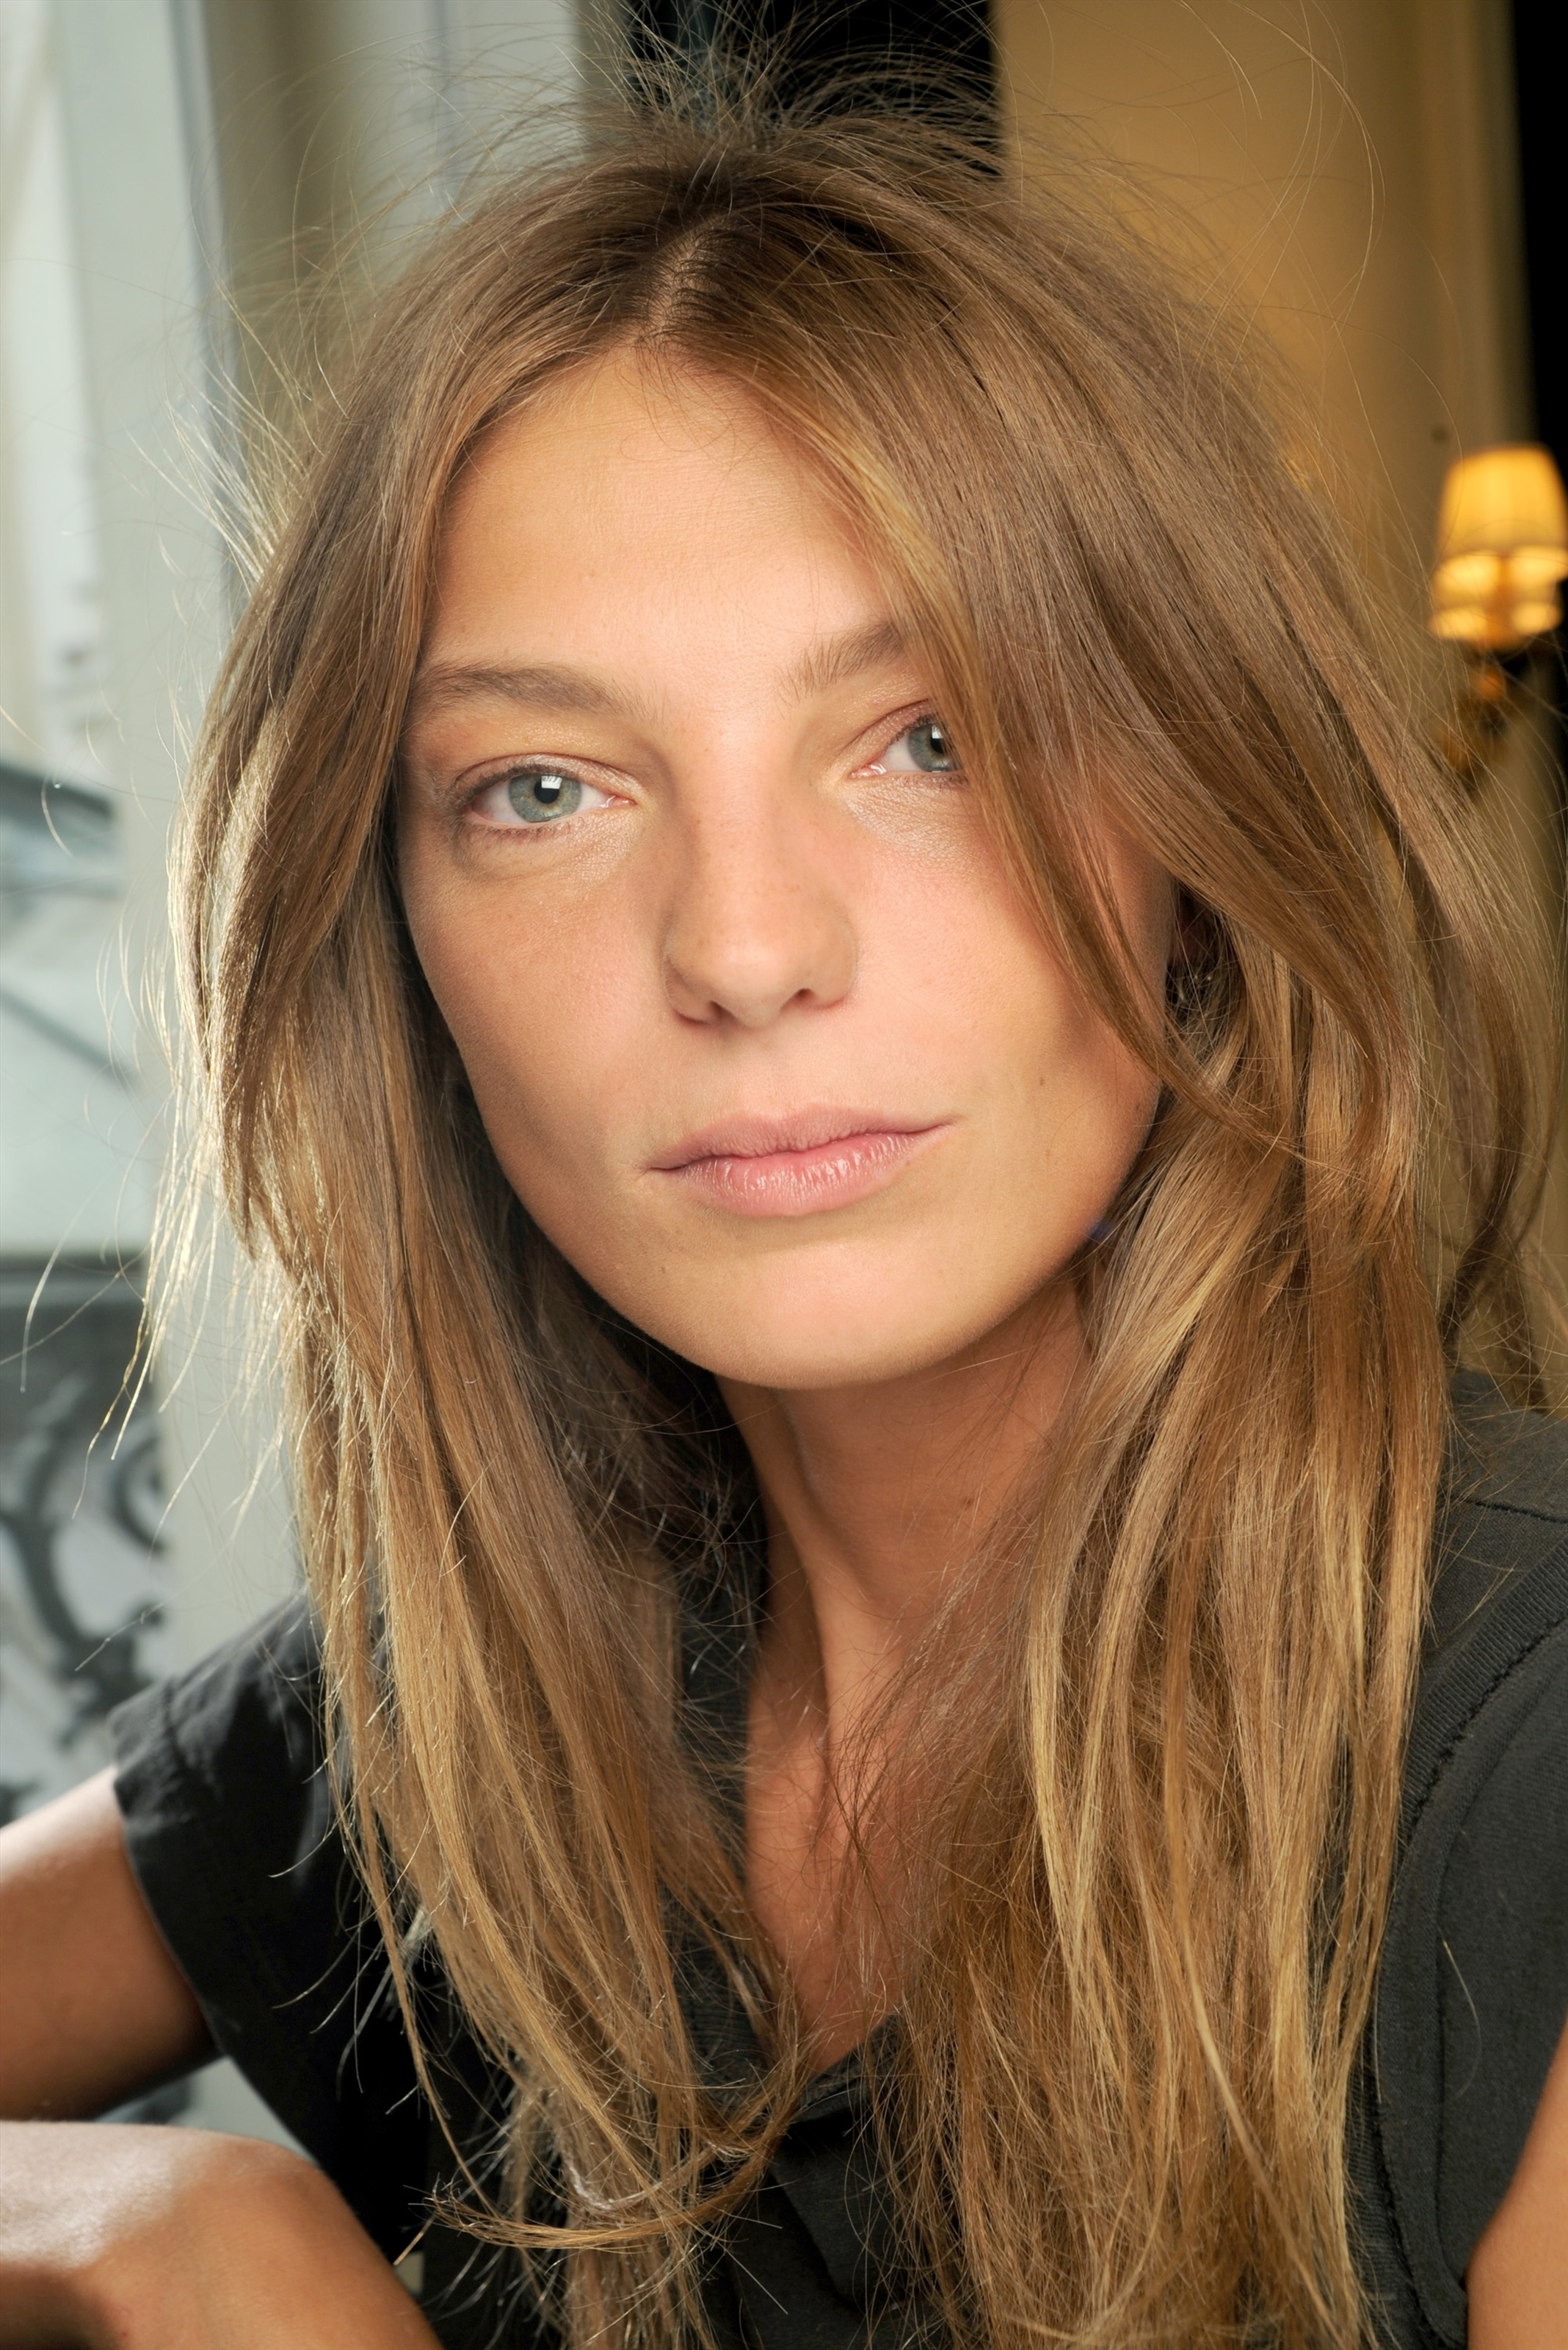 The 34-year old daughter of father (?) and mother(?), 180 cm tall Daria Werbowy in 2018 photo